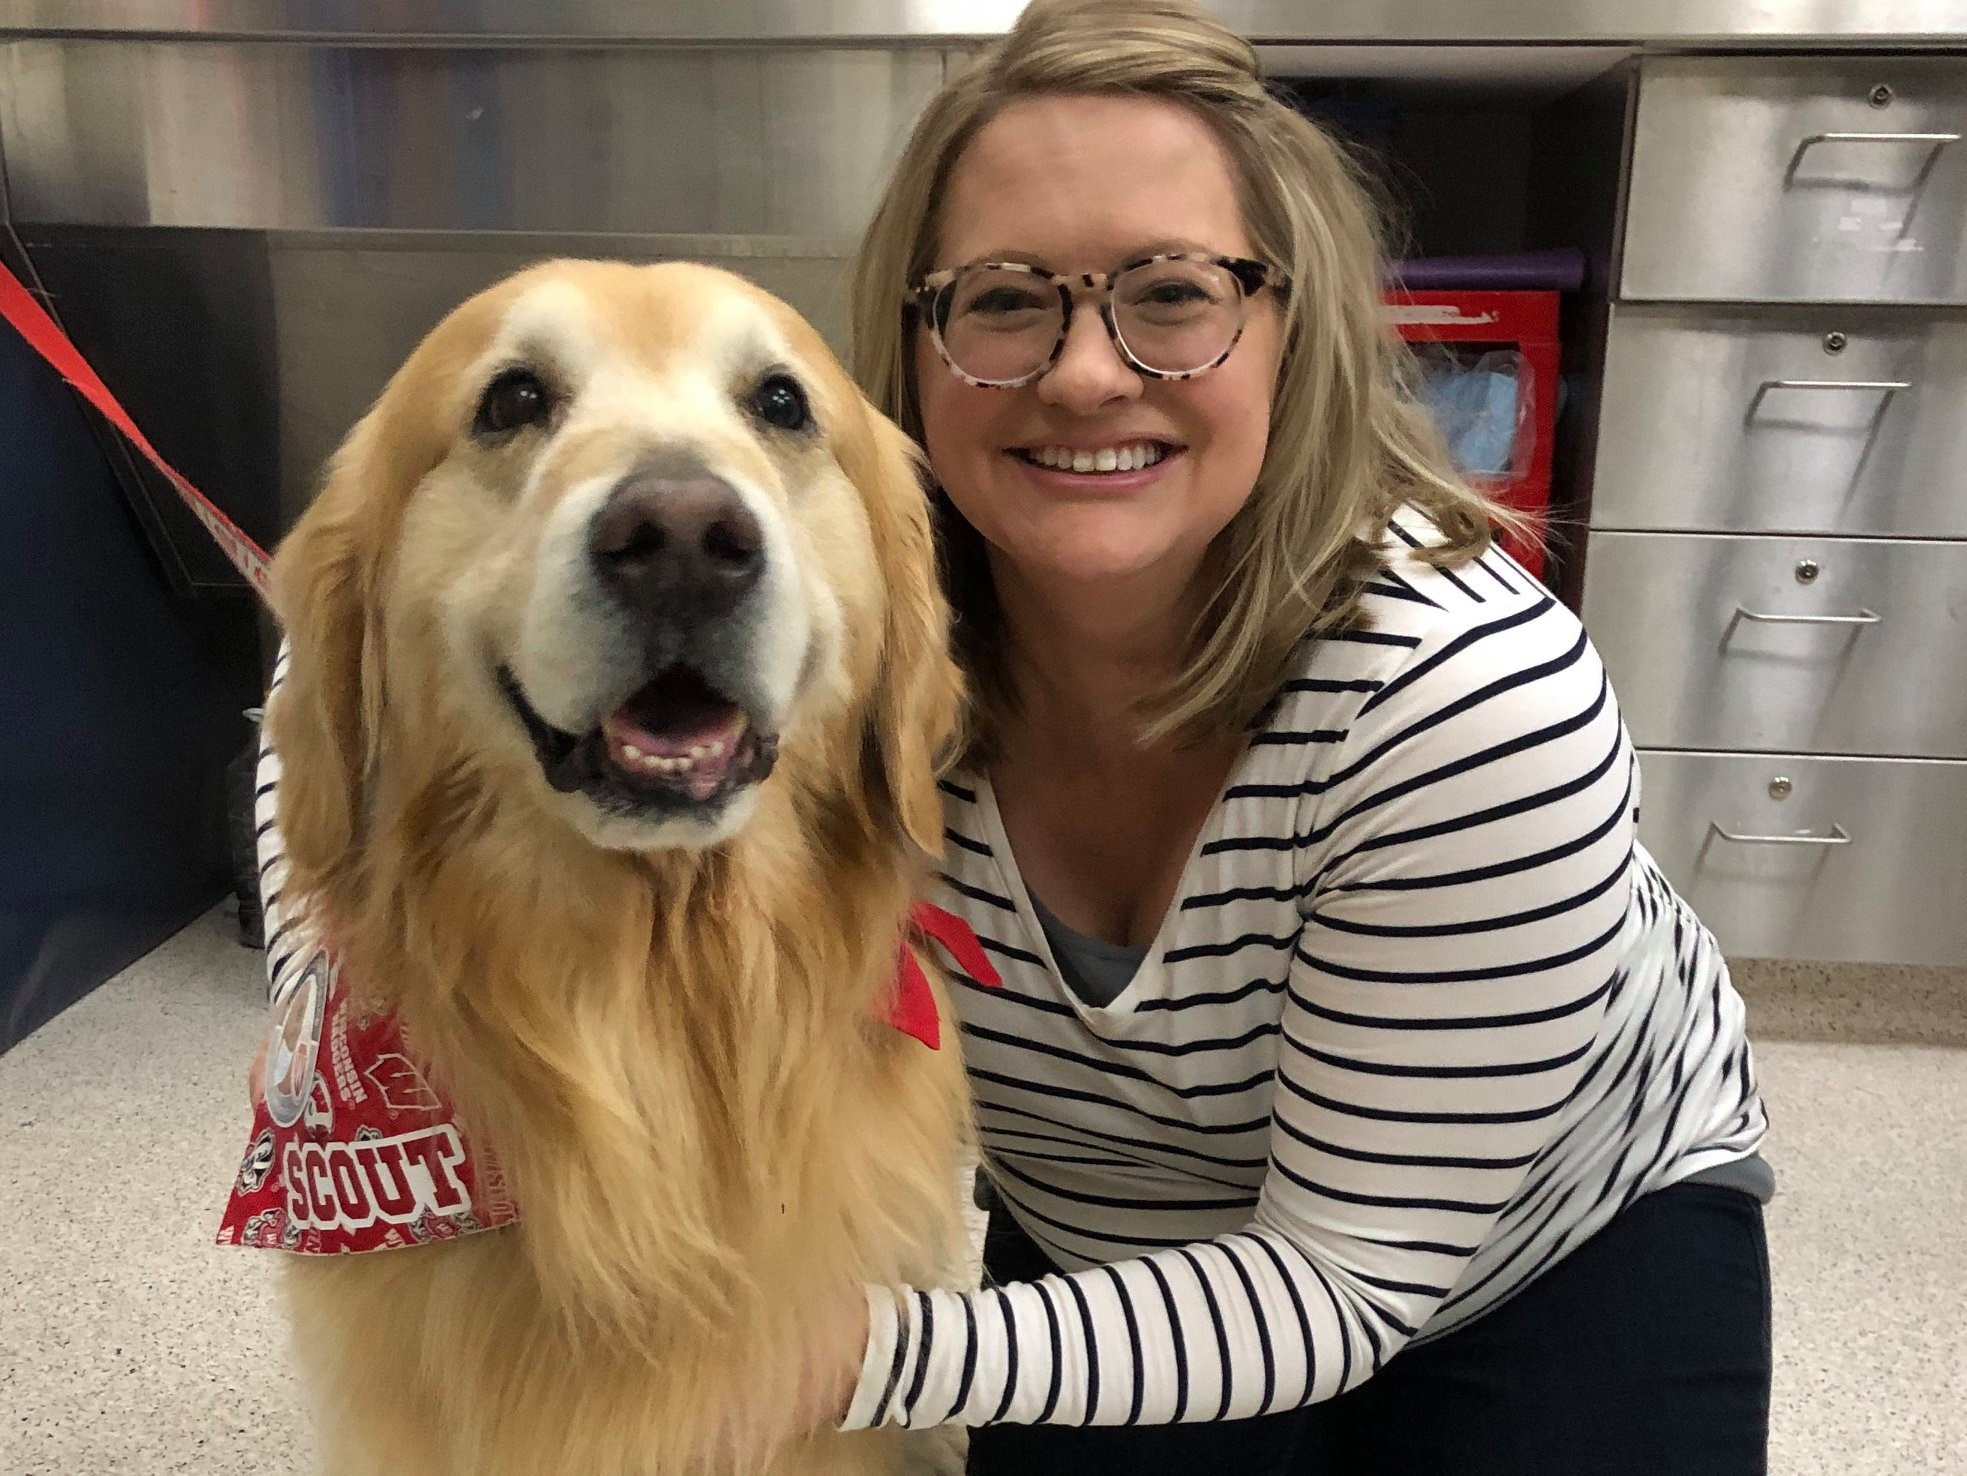 Photo of SJMC alum Ashley Voss posing with a golden retriever named Scout.